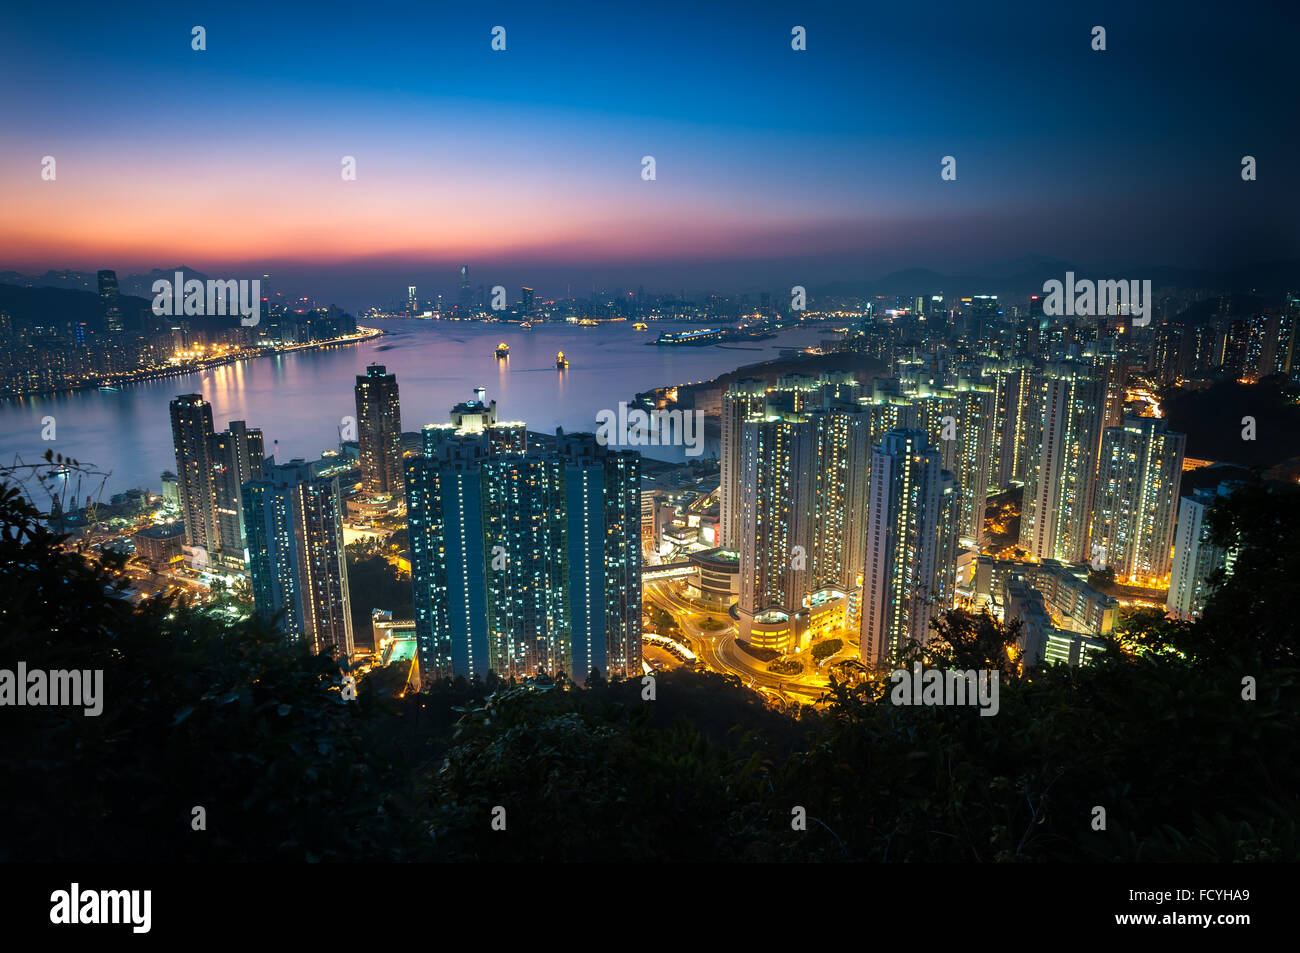 Illuminated high-rise apartment blocks in Yau Tong as seen from Devil's Peak, Kowloon - Stock Image